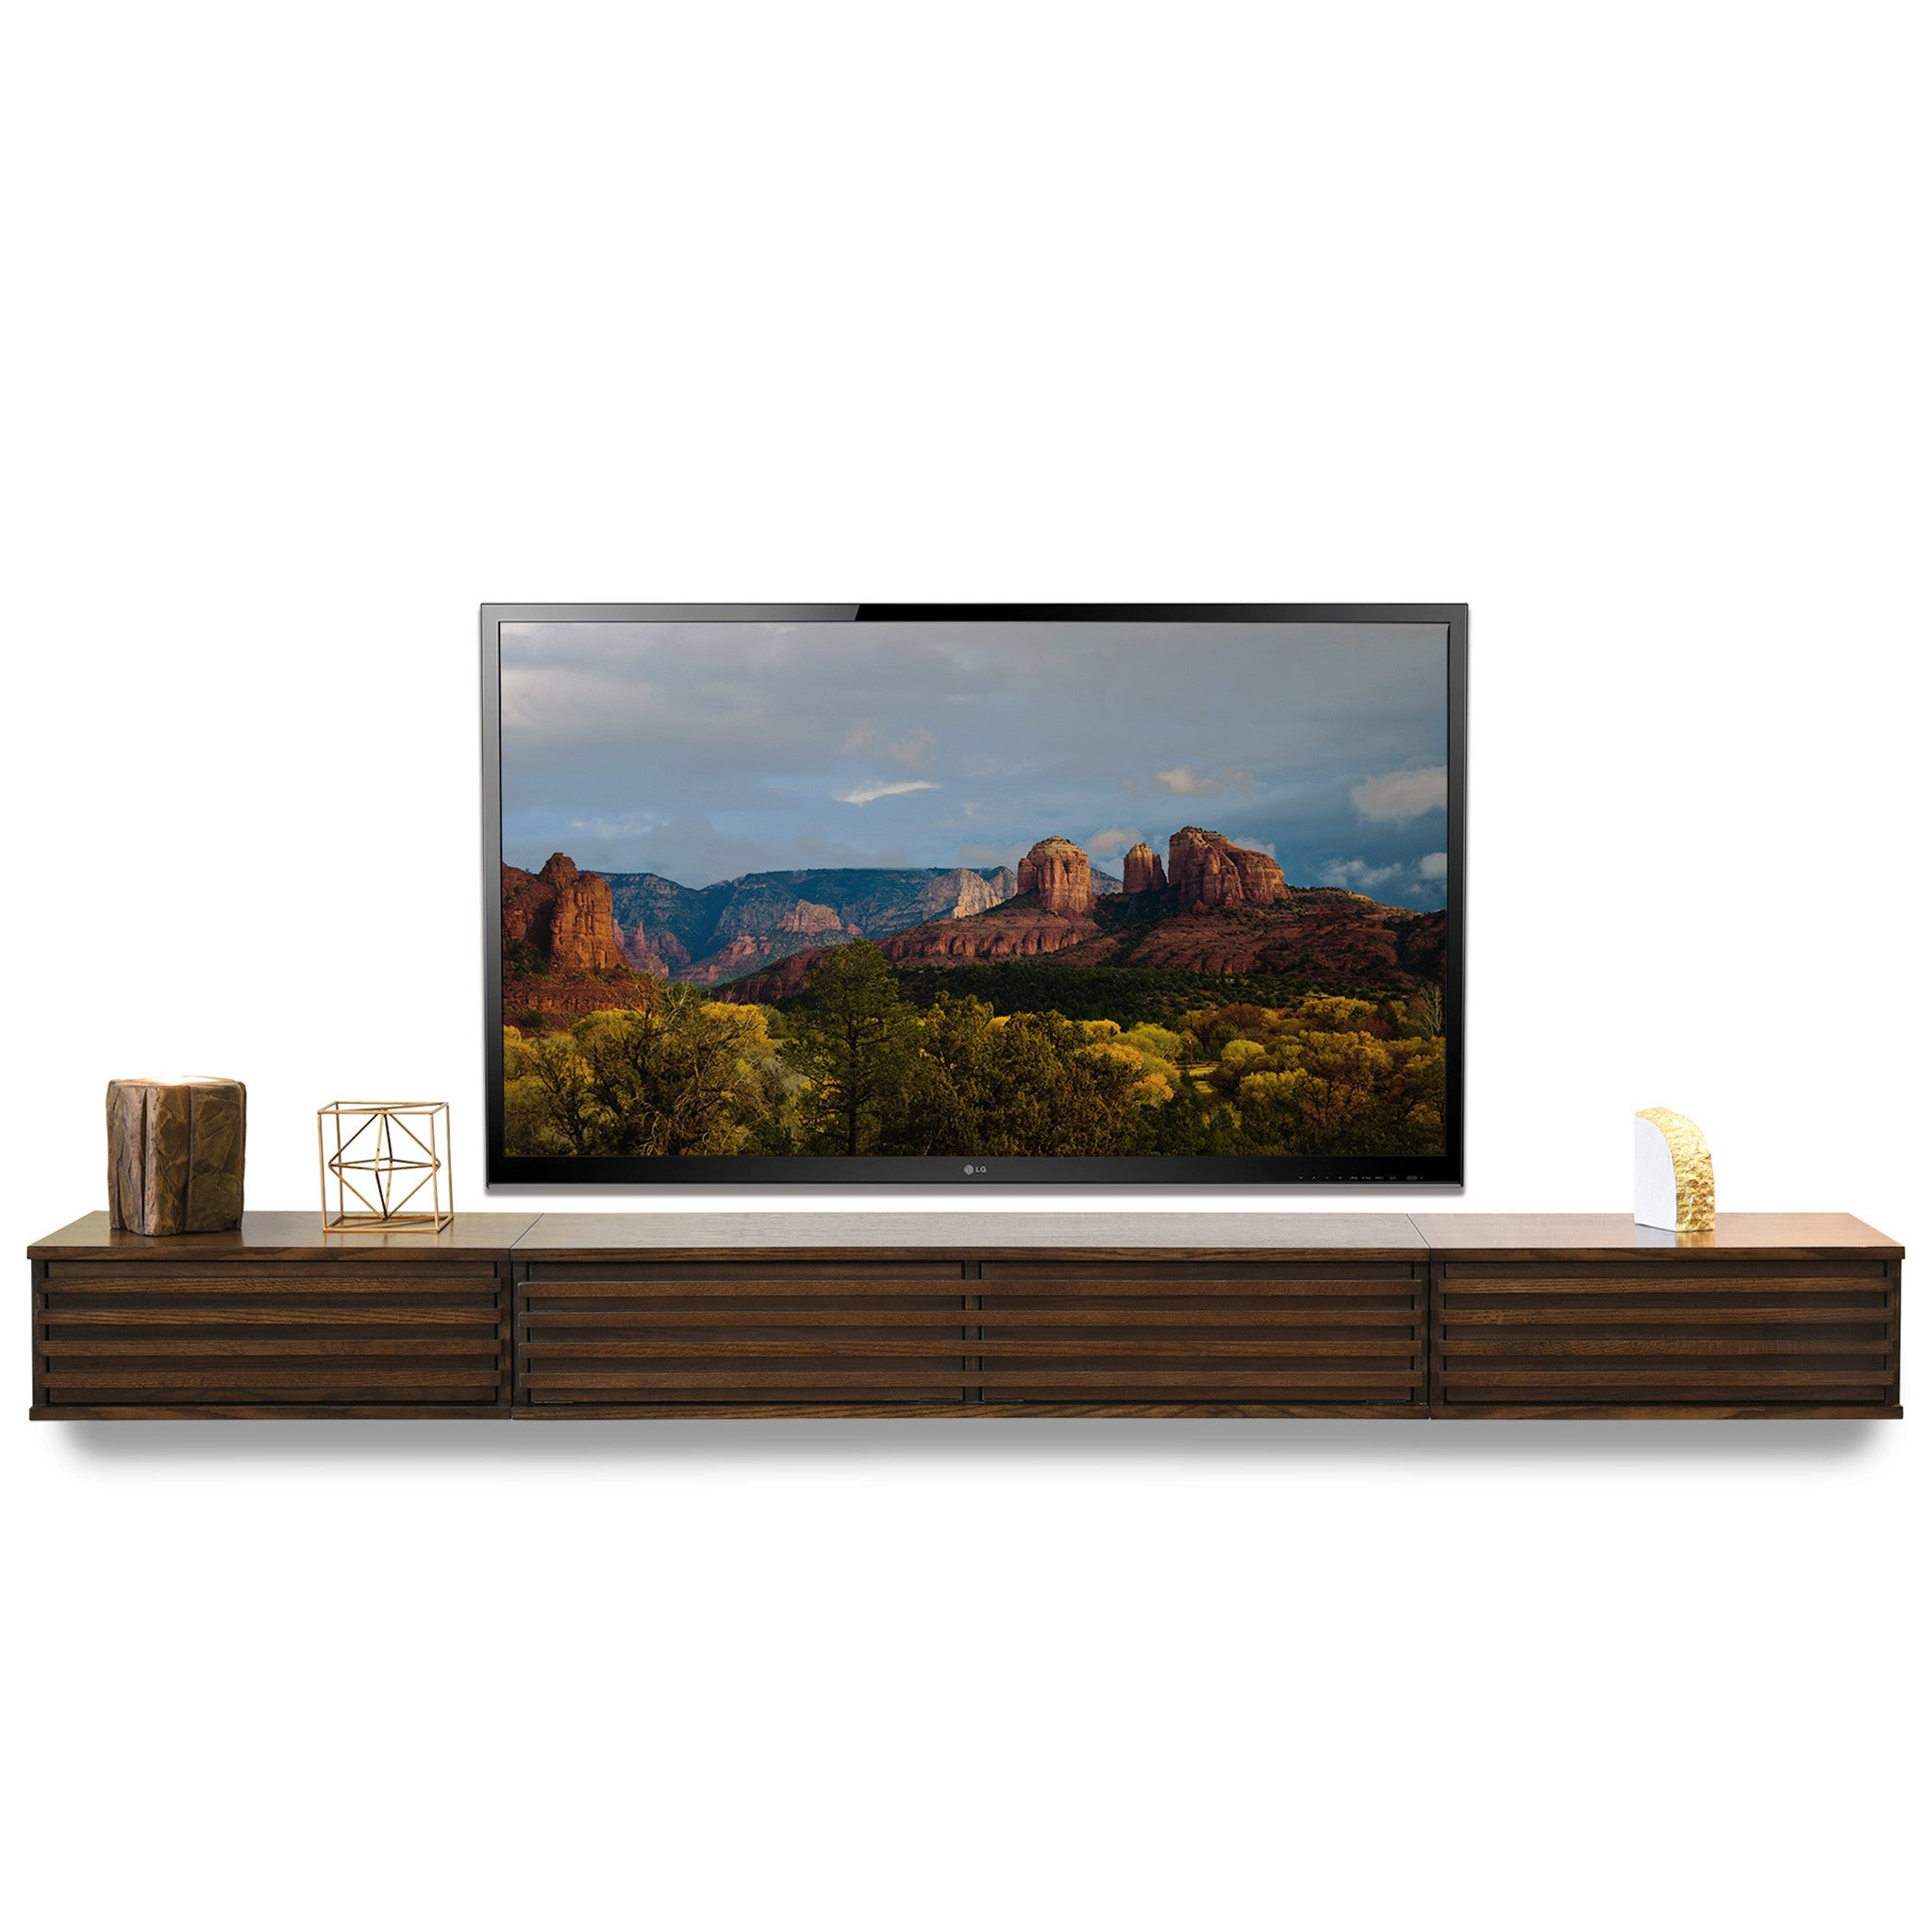 Floating Tv Stand Wall Mount Entertainment Center Lotus